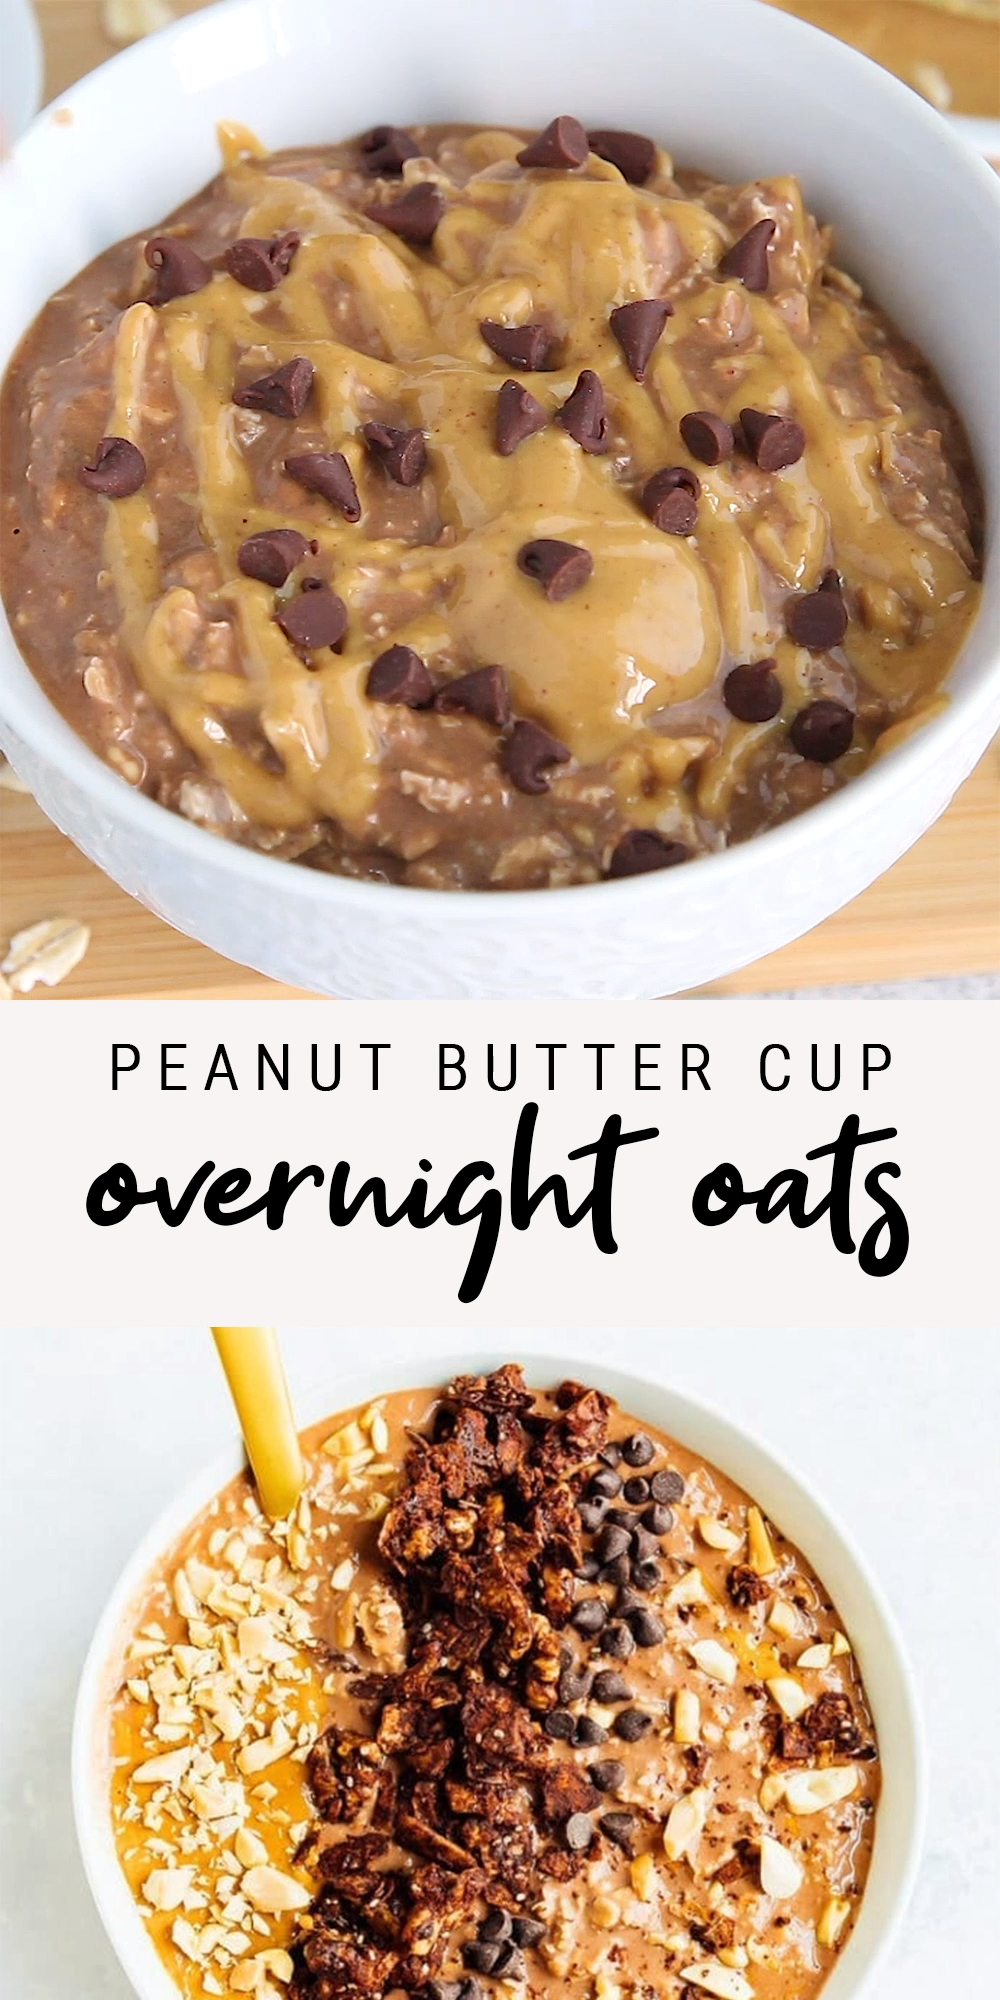 Peanut Butter Cup Overnight Oats | Easy Protein-Packed Recipe | Vegan + Gluten-Free